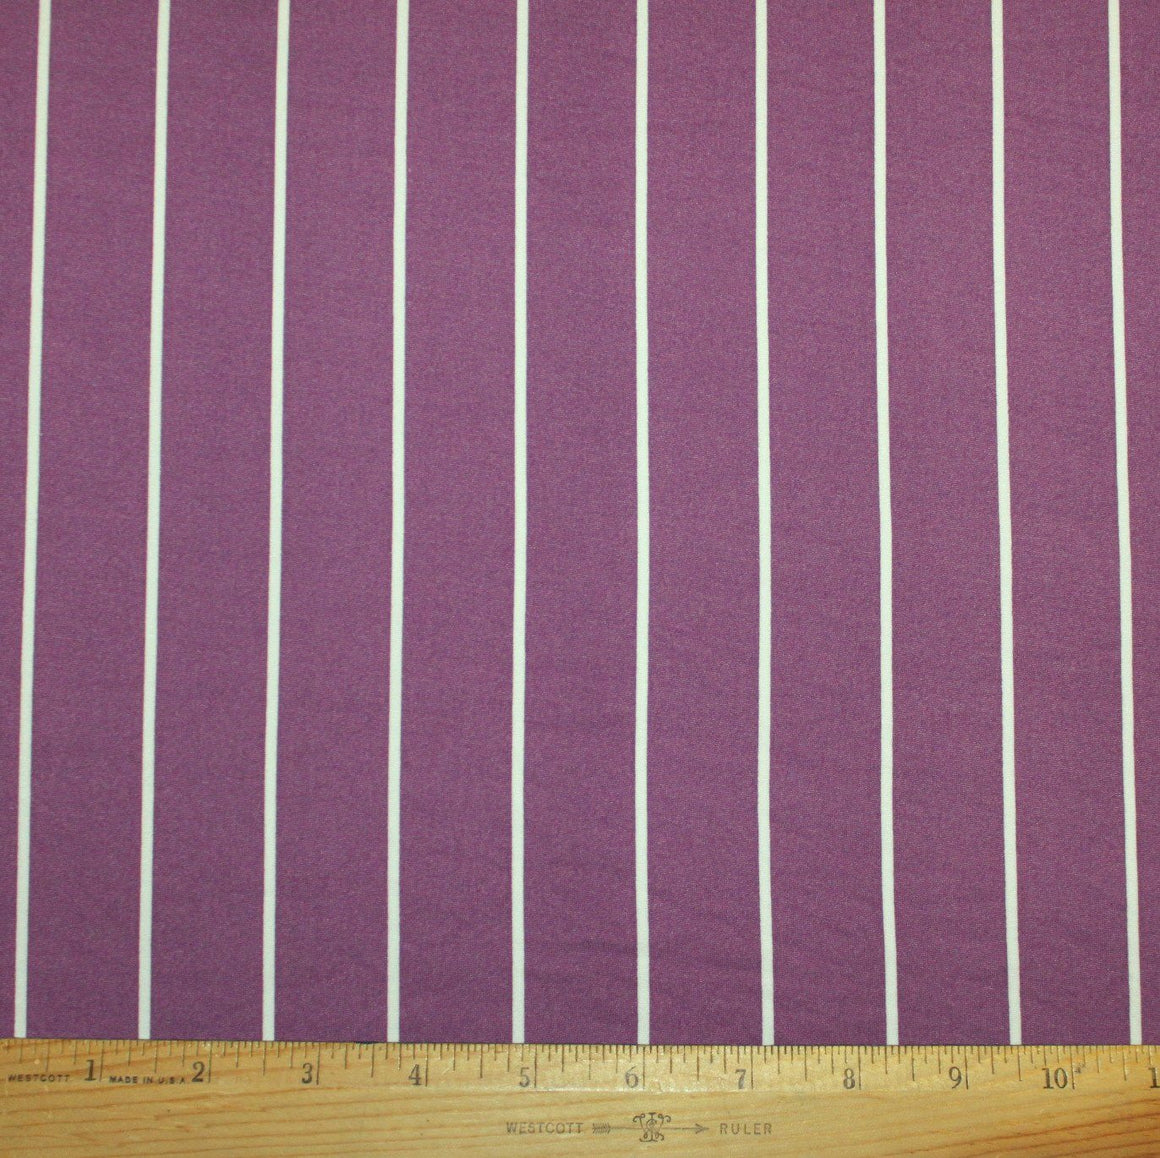 Plum and White Vertical Stripe Double Brushed Poly Spandex Knit, 1 yard